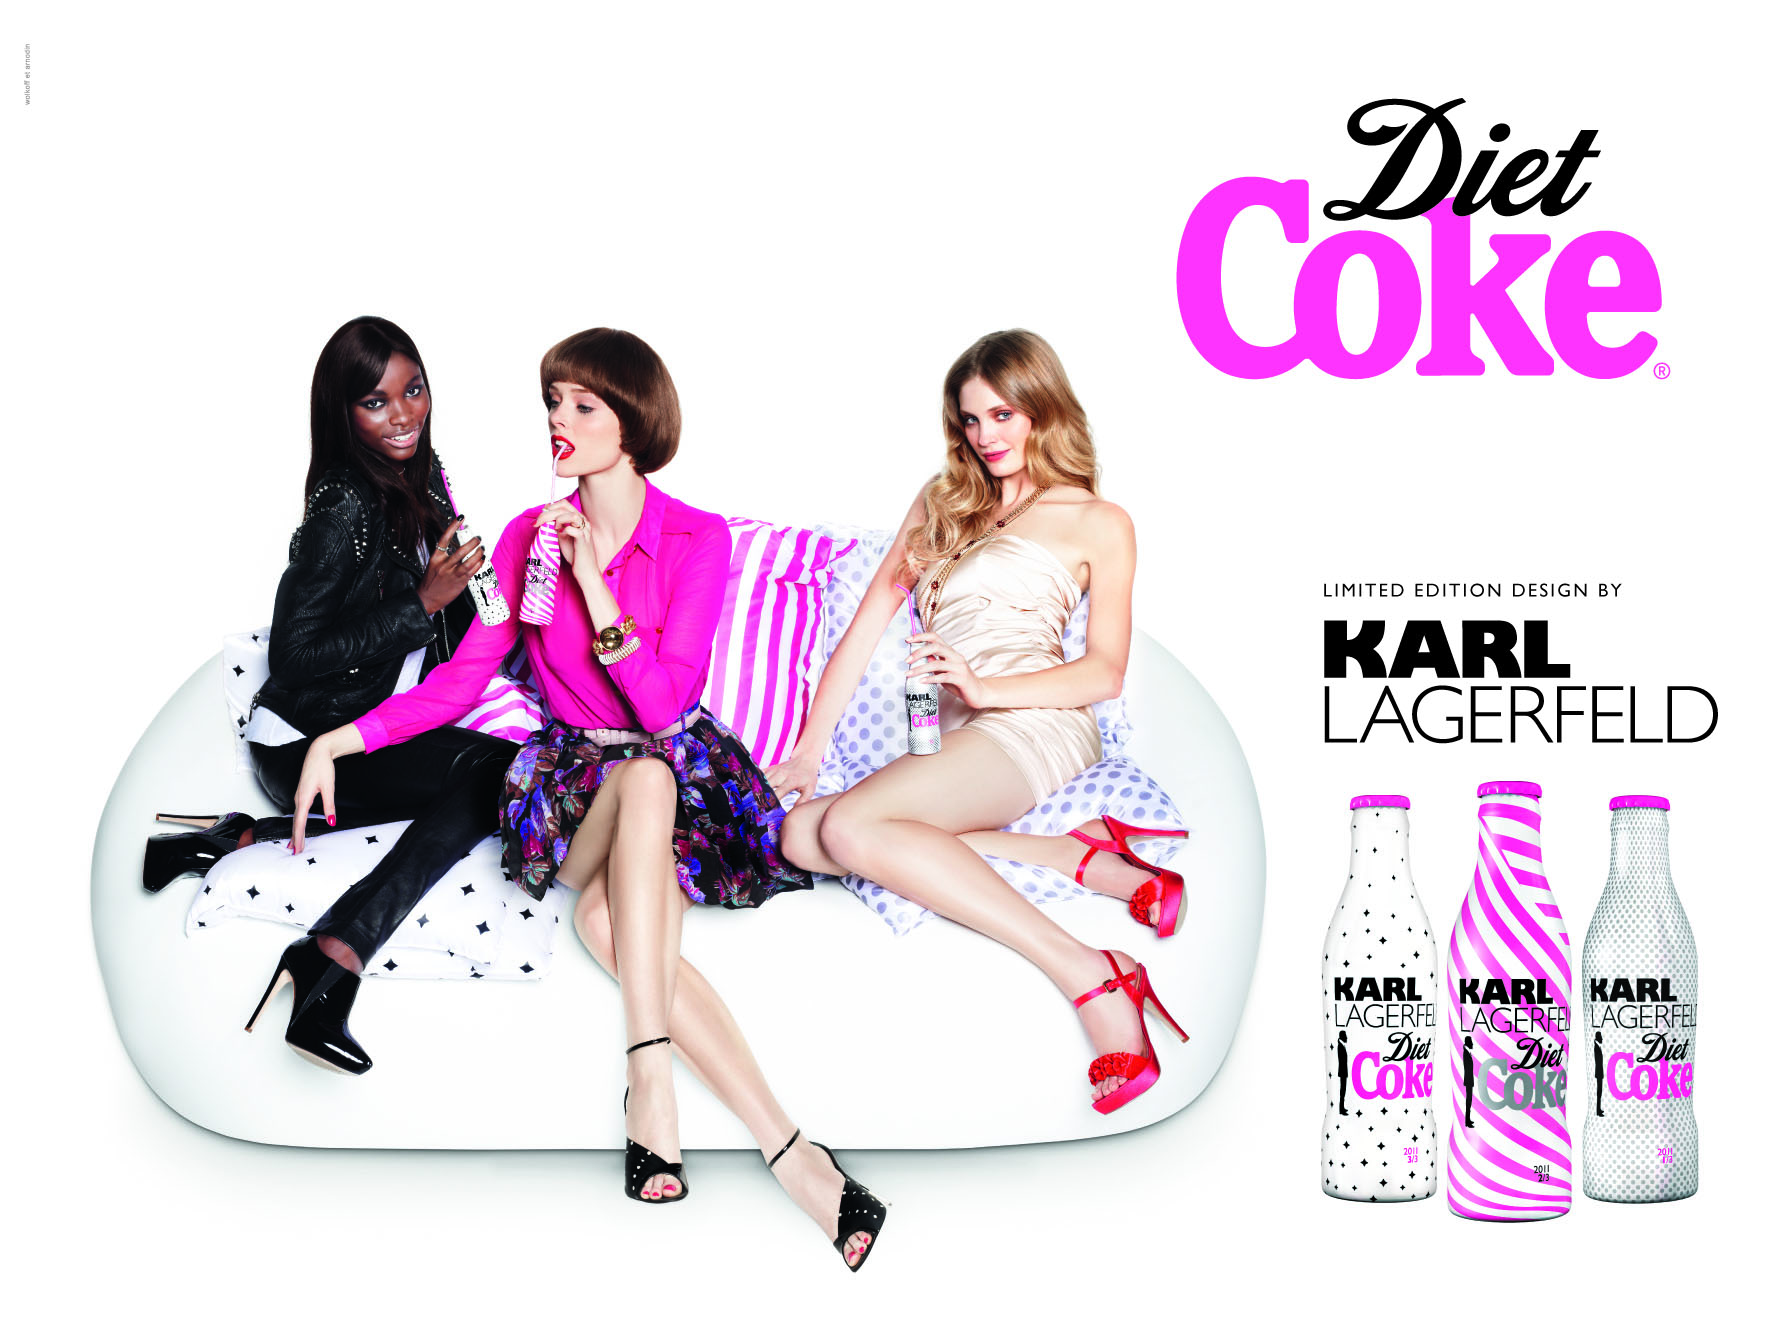 DIET COKE KL 3 GIRLS KARL LAGERFELD